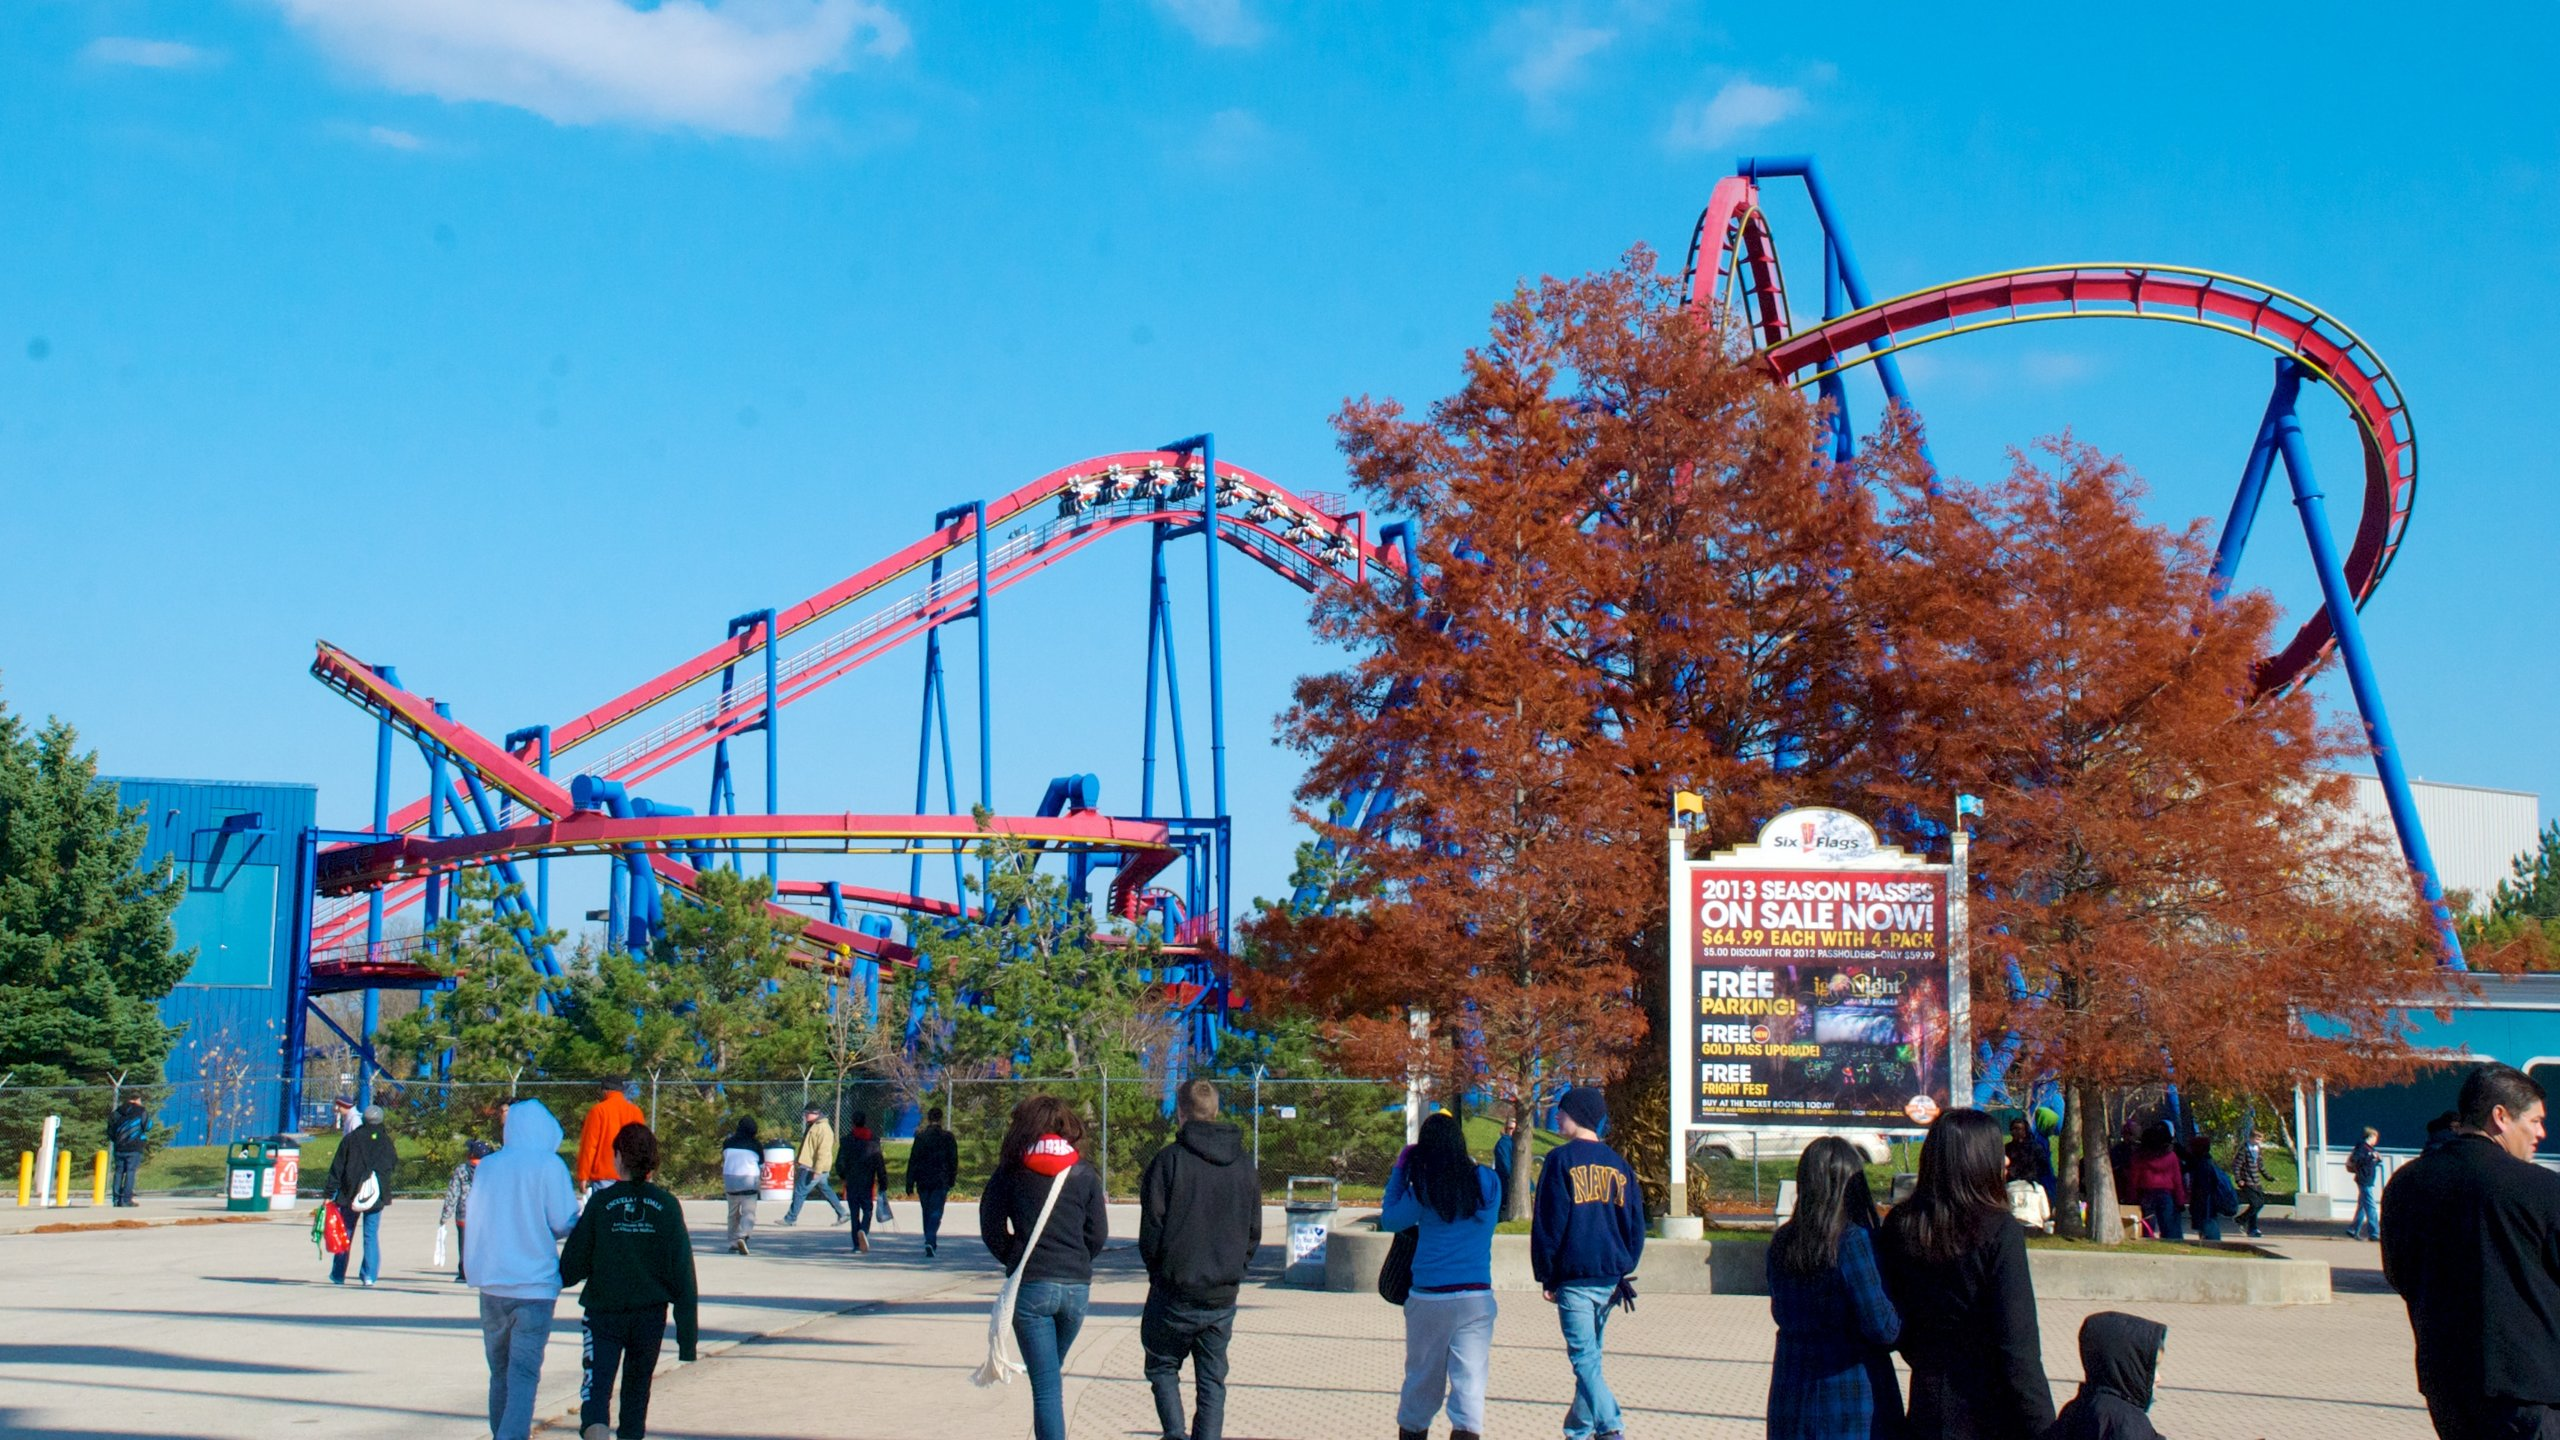 The Best Hotels Closest To Six Flags Great America In Chicago For 2021 Free Cancellation On Select Hotels Expedia